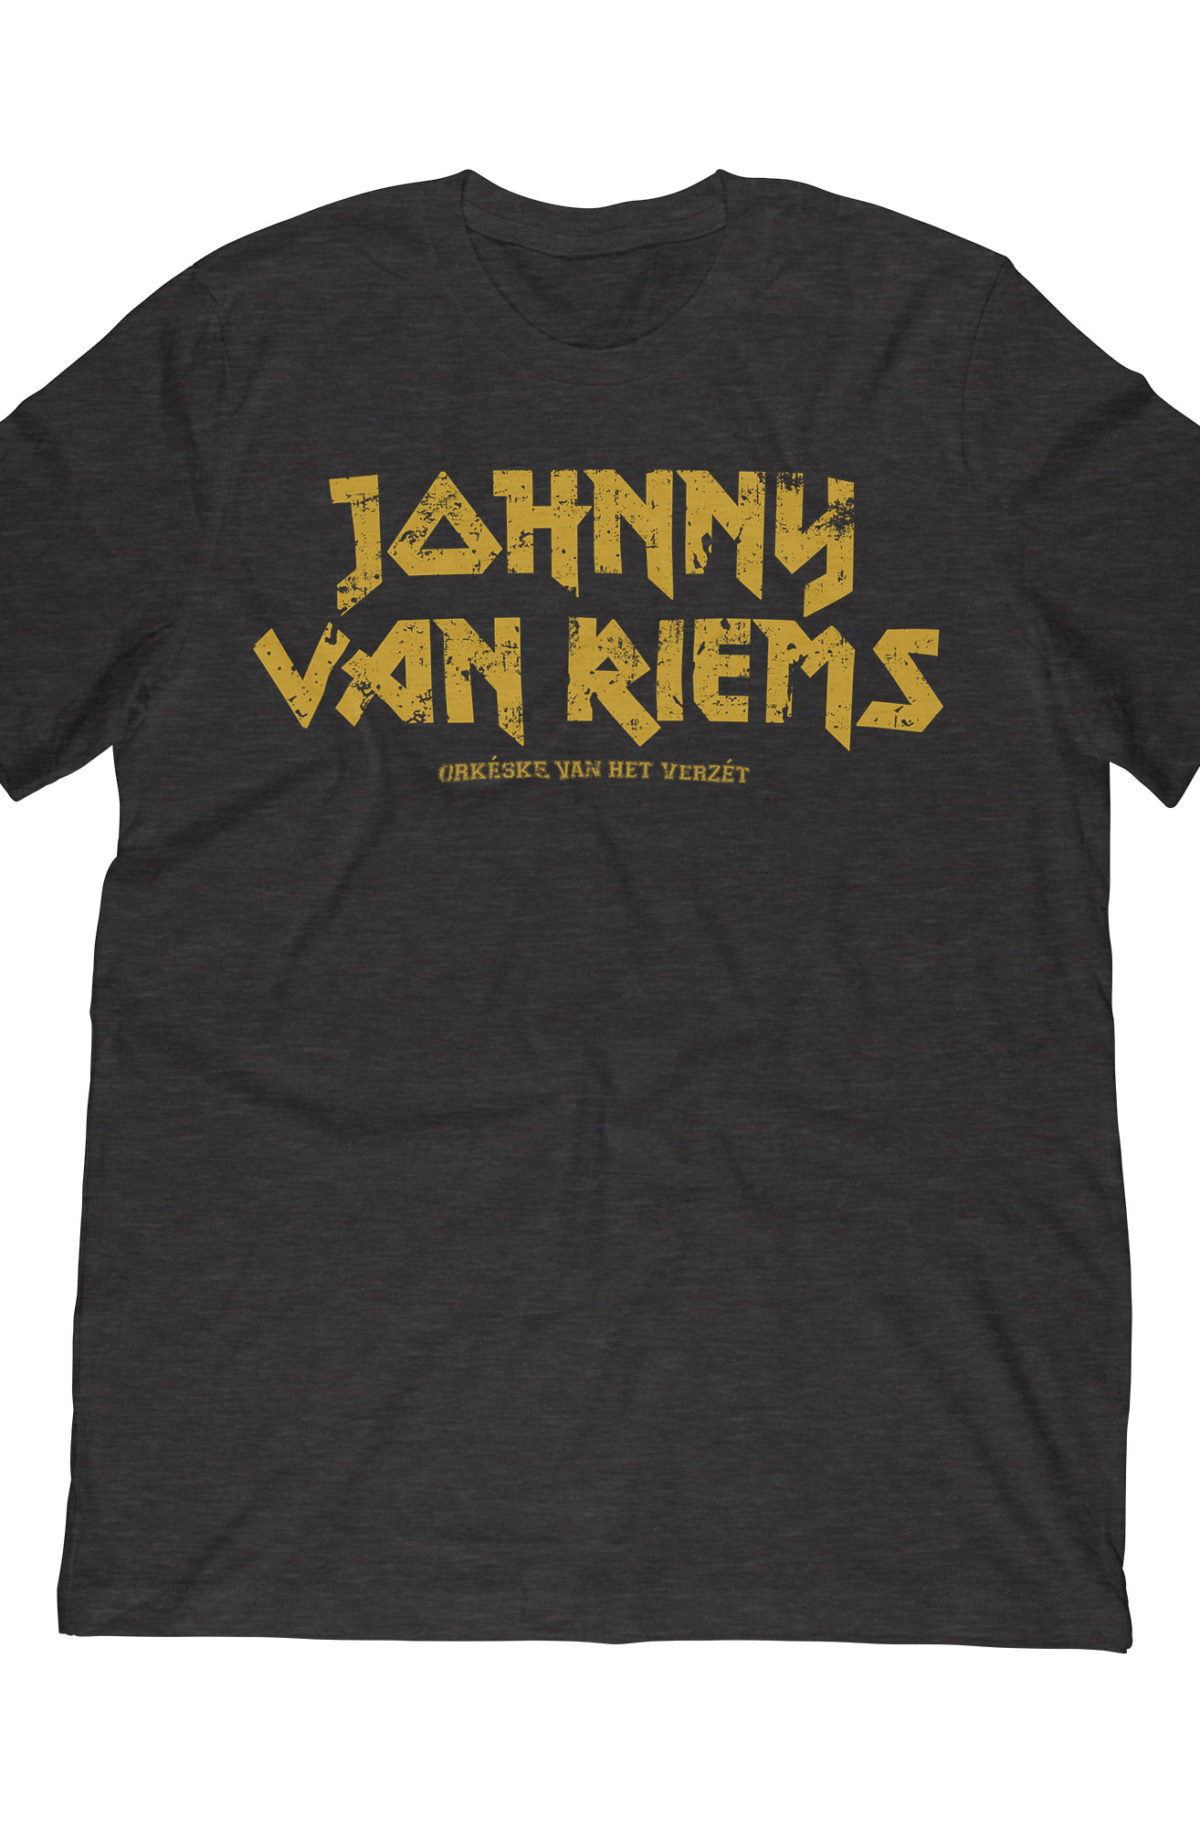 johnny van riems band shirt mcsnooze custom shirts for custom people riemst zeefdruk poezie oet het durrep rock orkeske